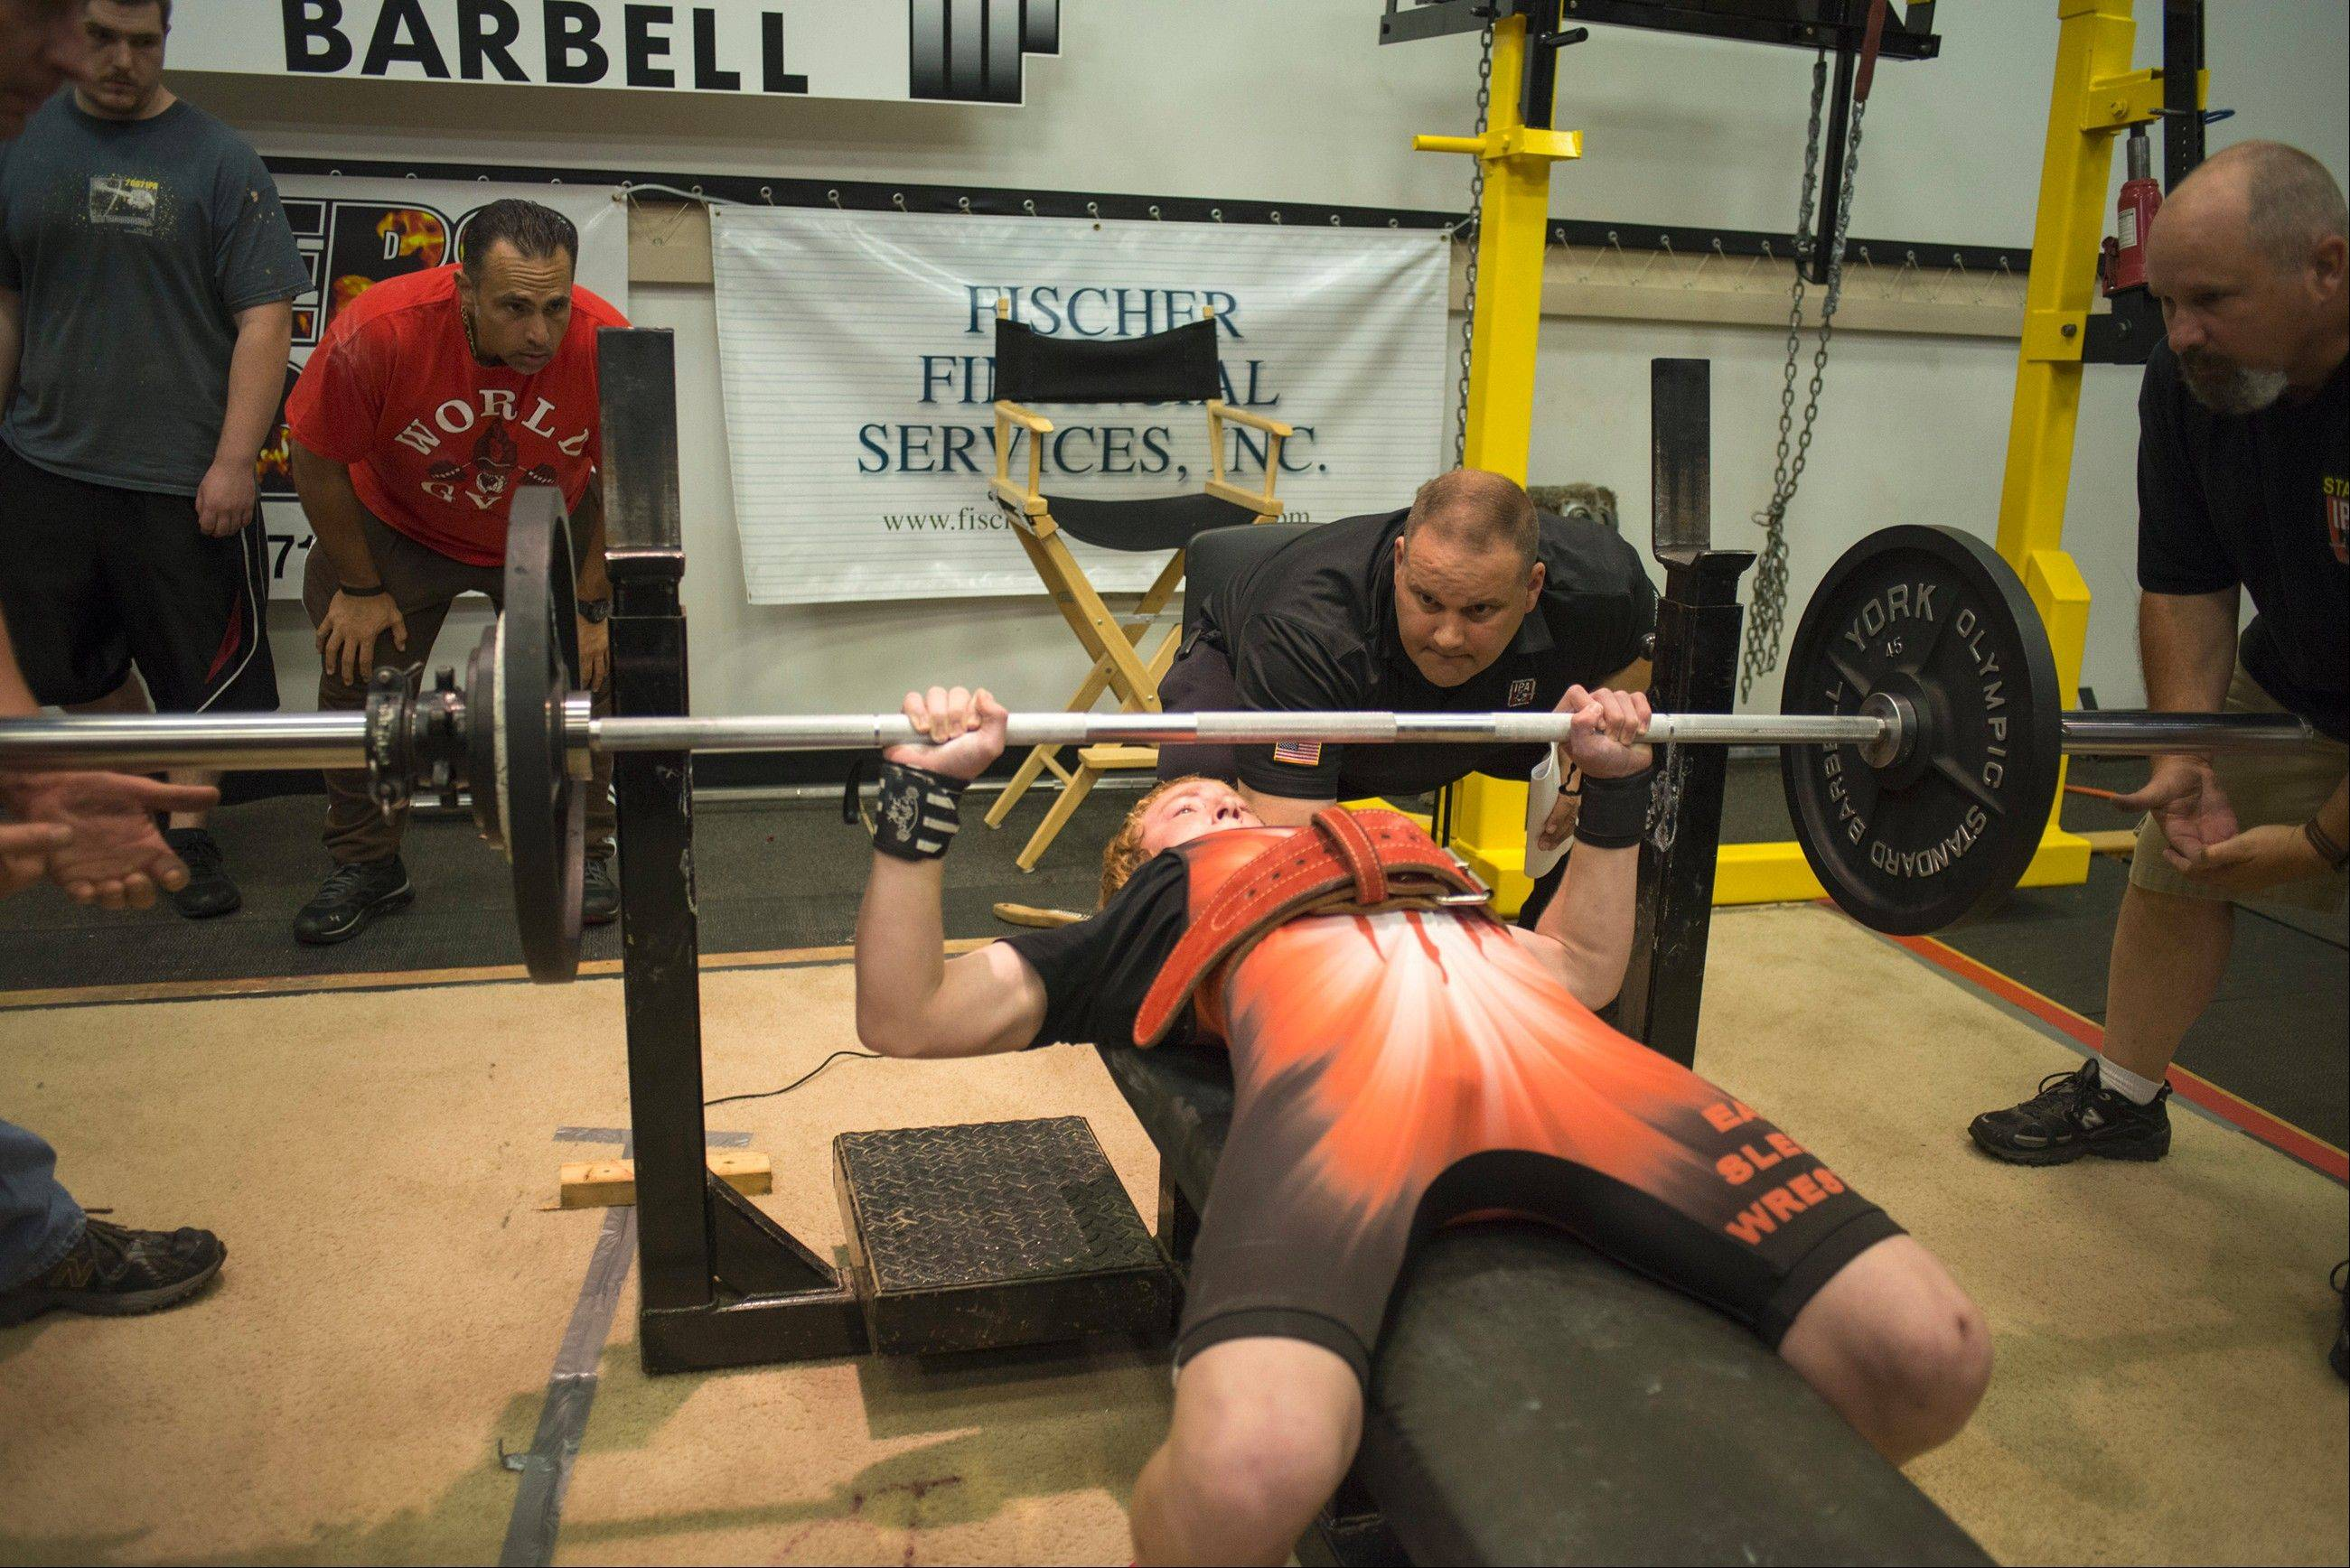 Jake Schellenschlager, 13 at the time, sets a bench-press record for his age and weight at the 2013 IPA Strength Spectacular Powerlifting Bench Press Championships on June 22, 2013, in York, Pa. During the event, he also set records in squat and dead lift.